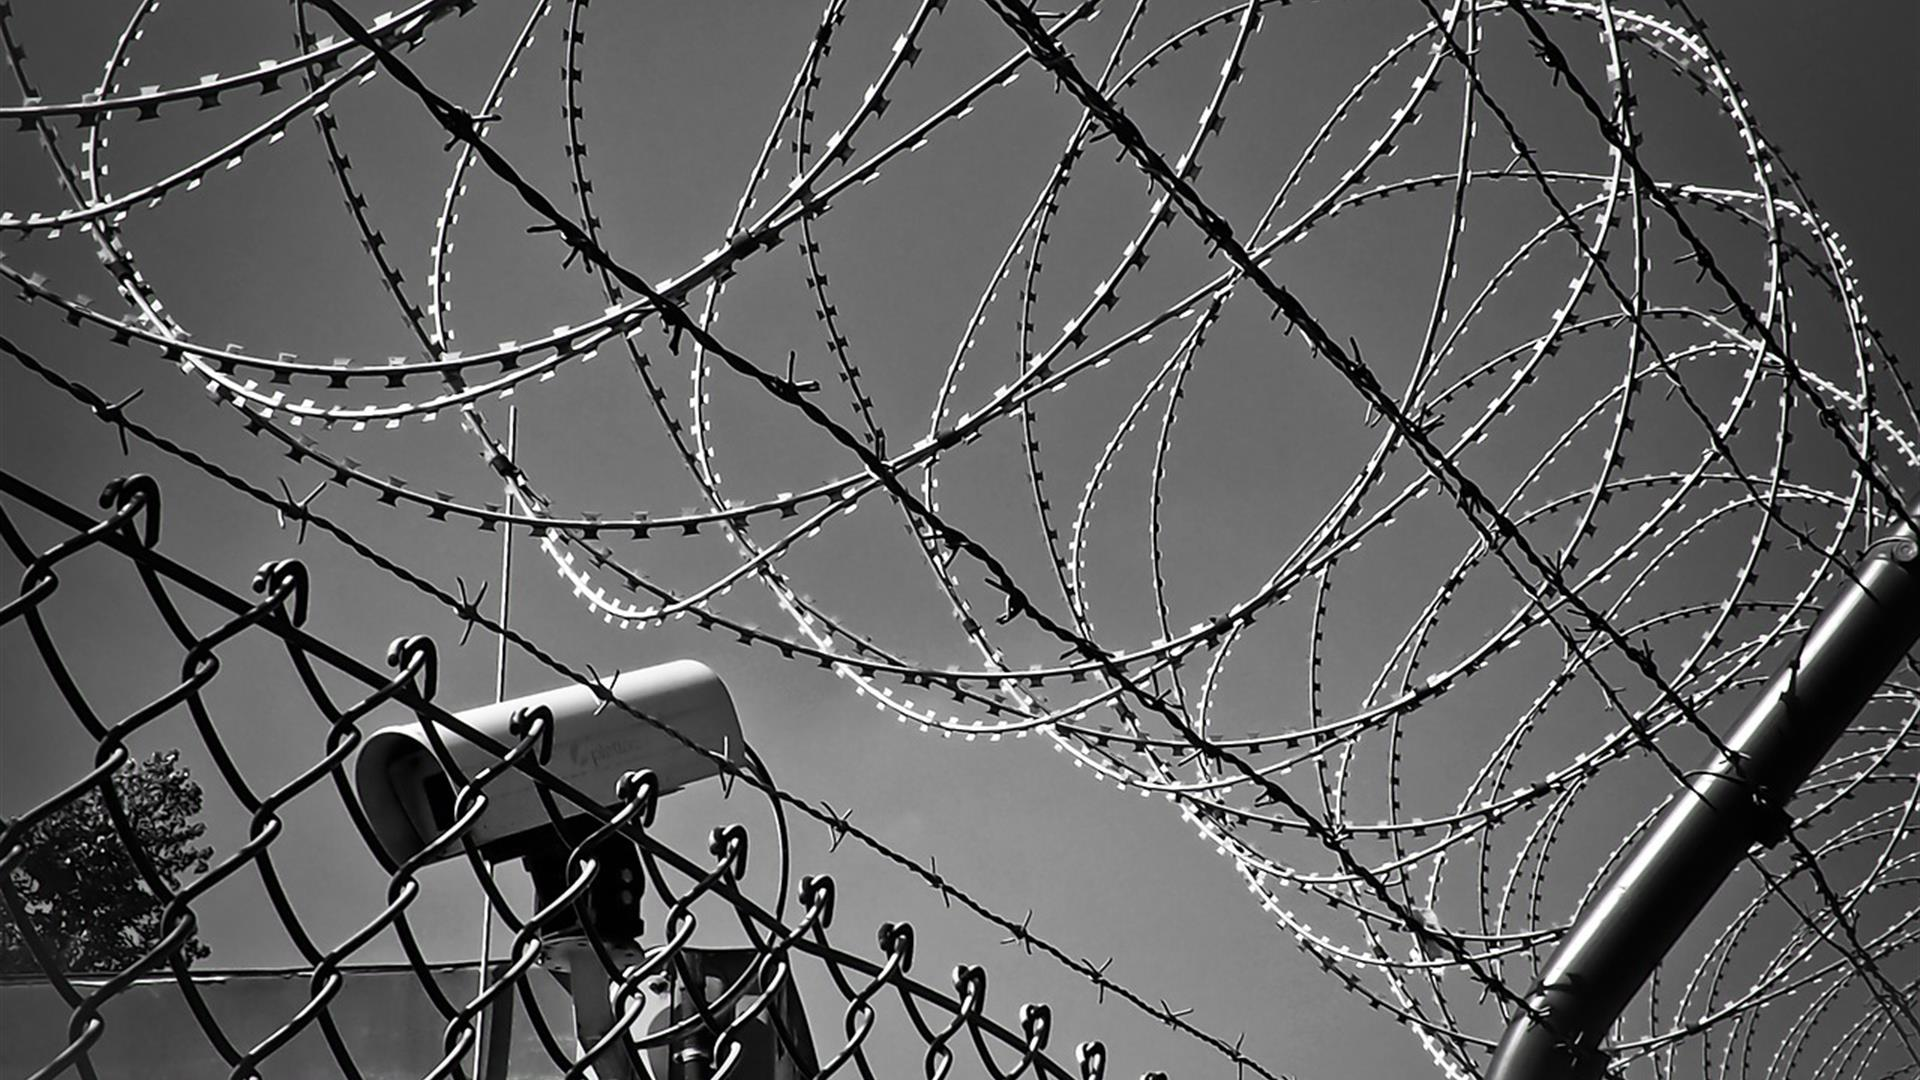 Barbed Wire 1670222 1280